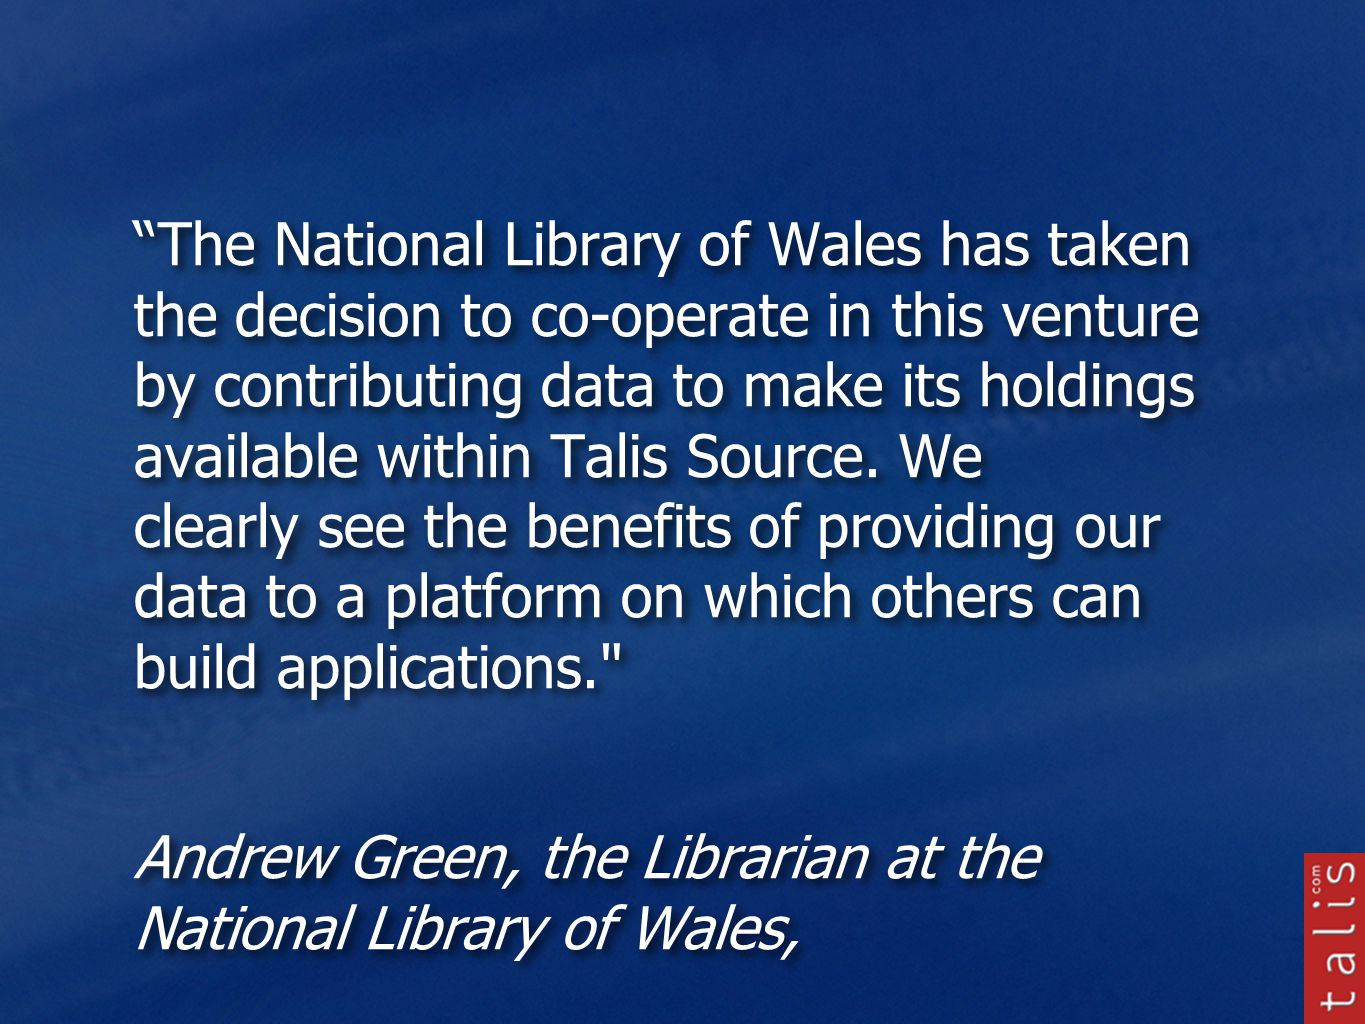 The National Library of Wales has taken the decision to co-operate in this venture by contributing data to make its holdings available within Talis Source.